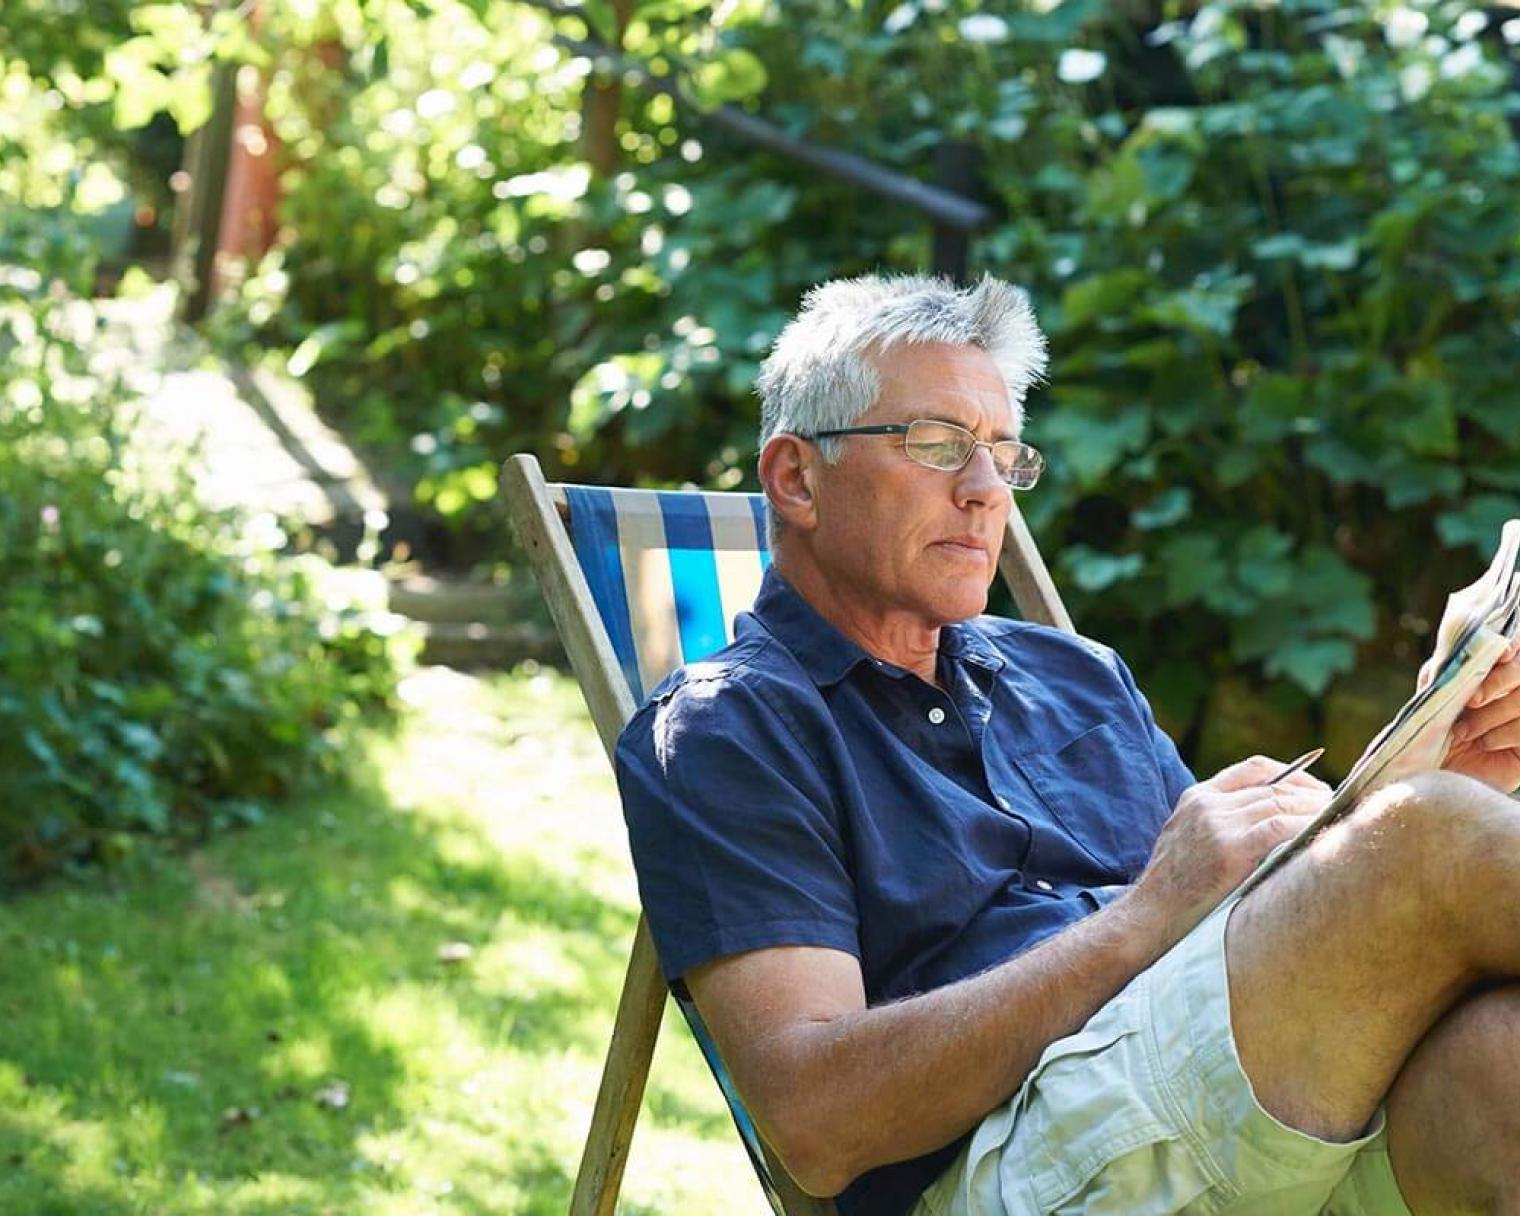 Middle aged man reading with glasses